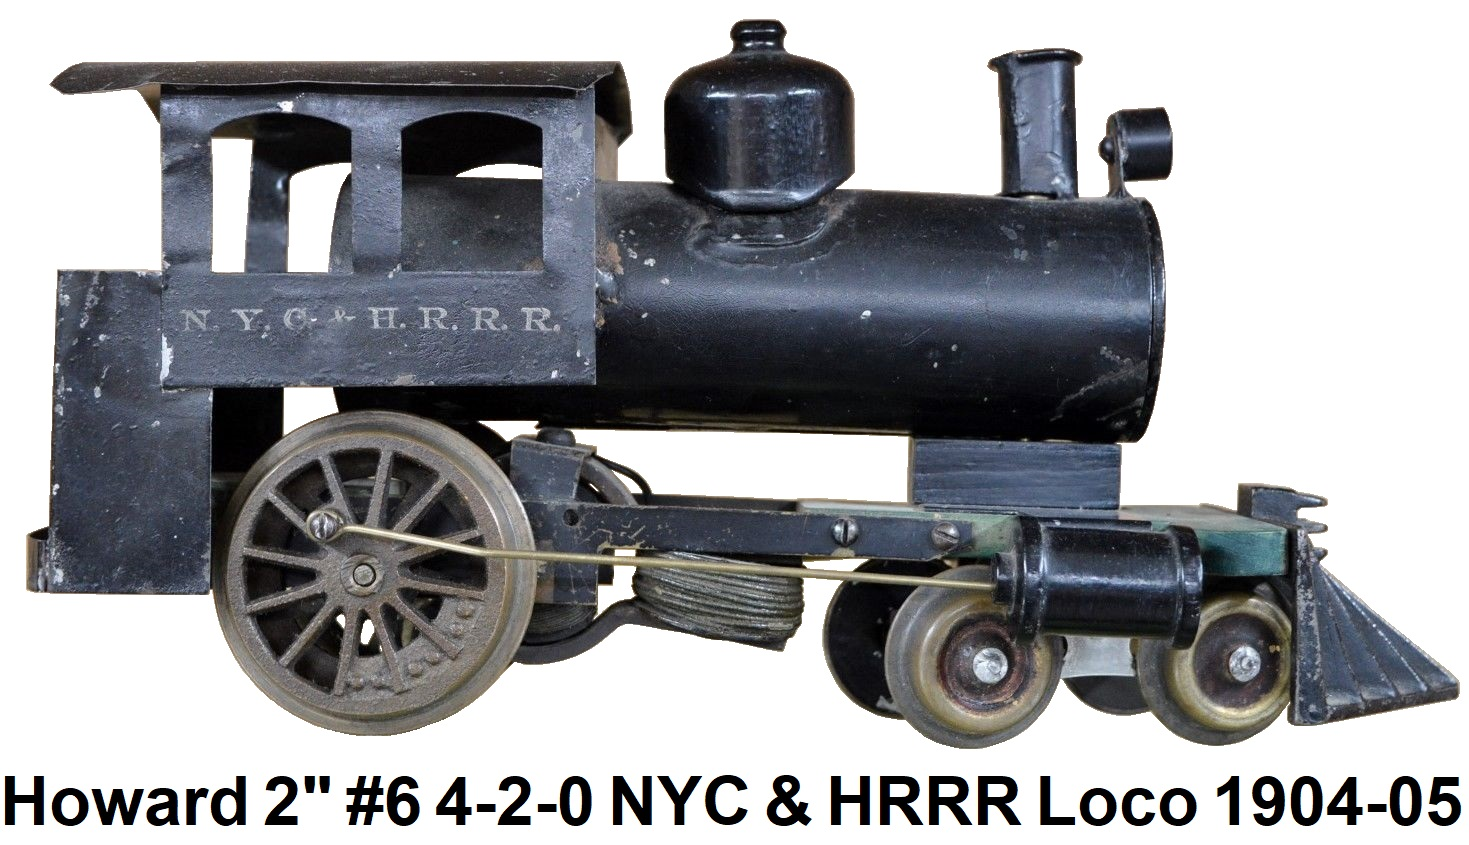 Howard early #6 4-2-0 Steam outline locomotive in 2 inch gauge